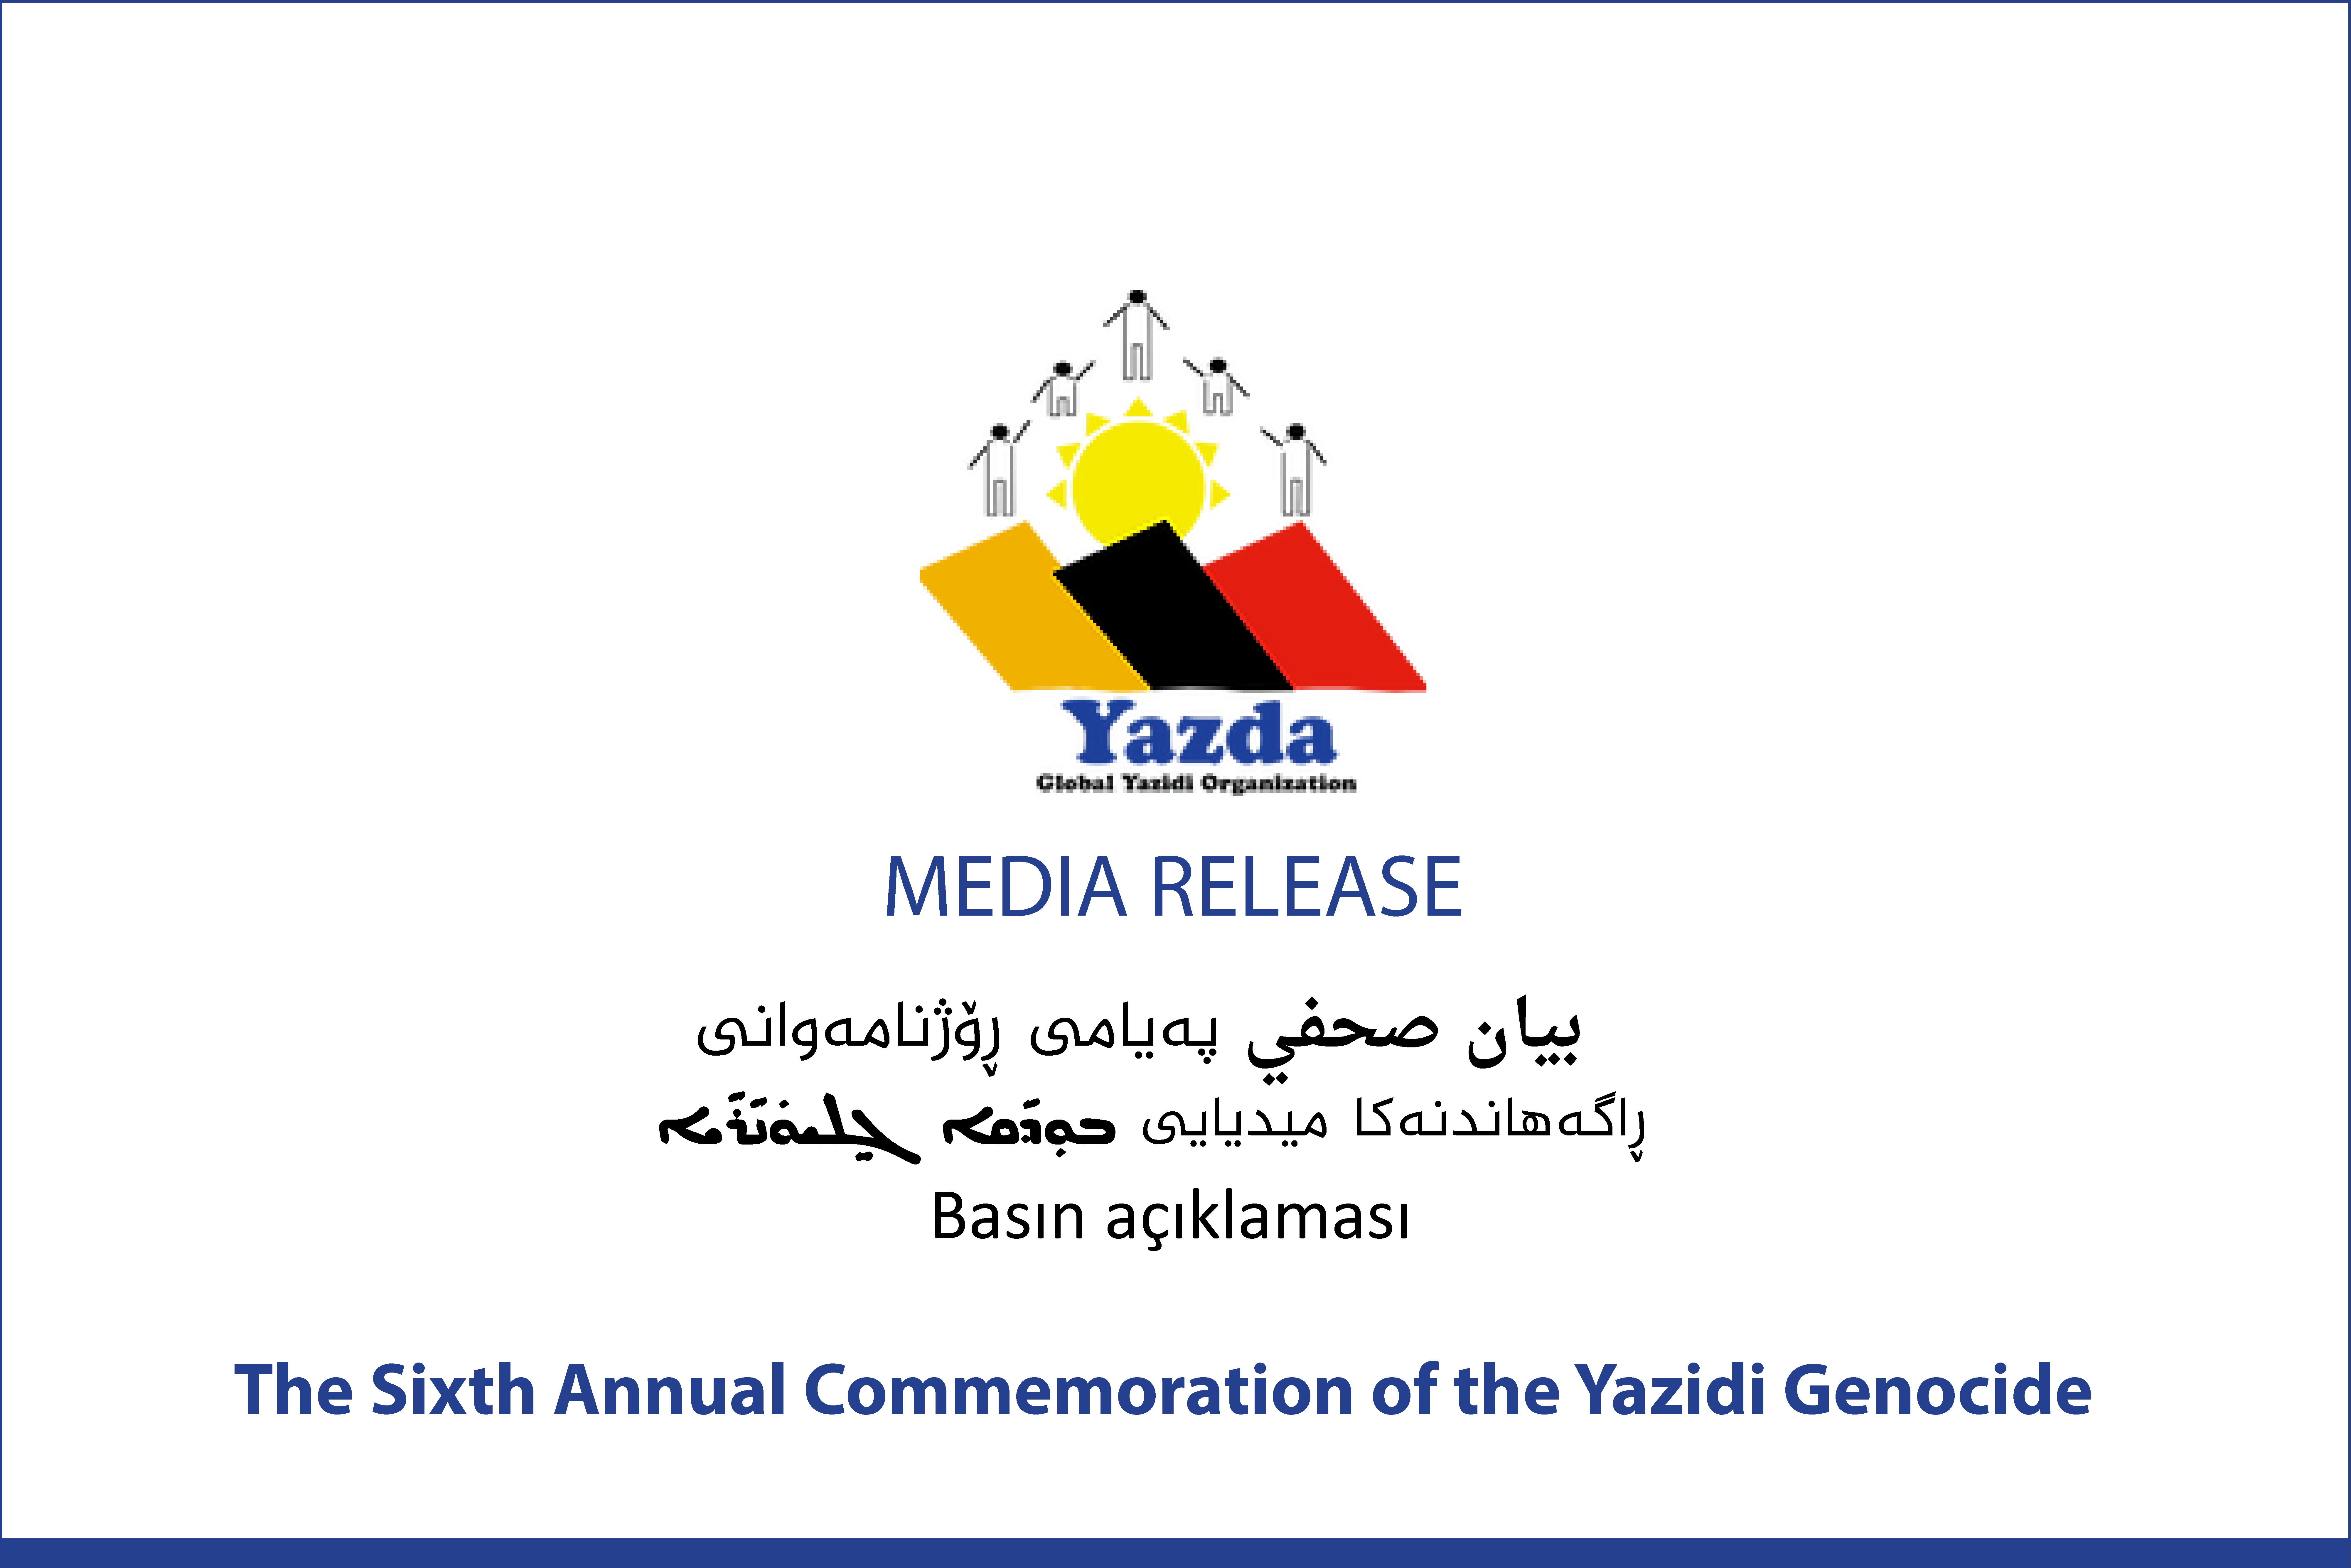 The Sixth Annual Commemoration of the Yazidi Genocide